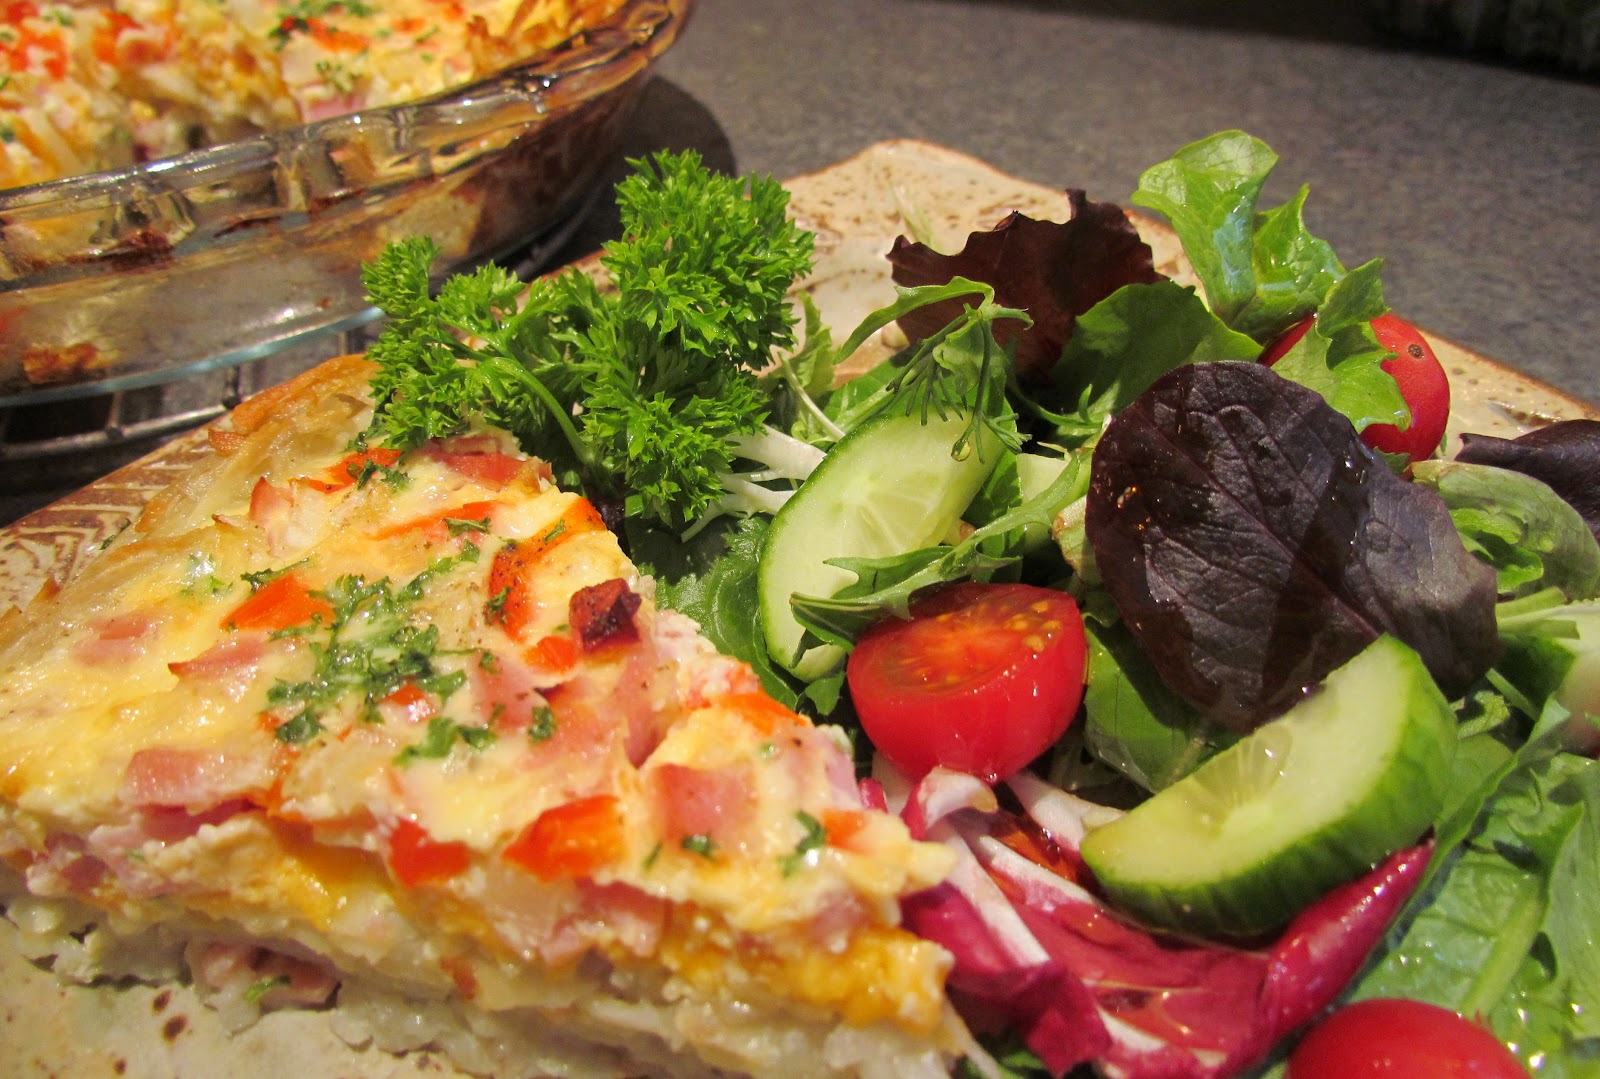 Rhubarb & Roses: Meat and Potato Quiche